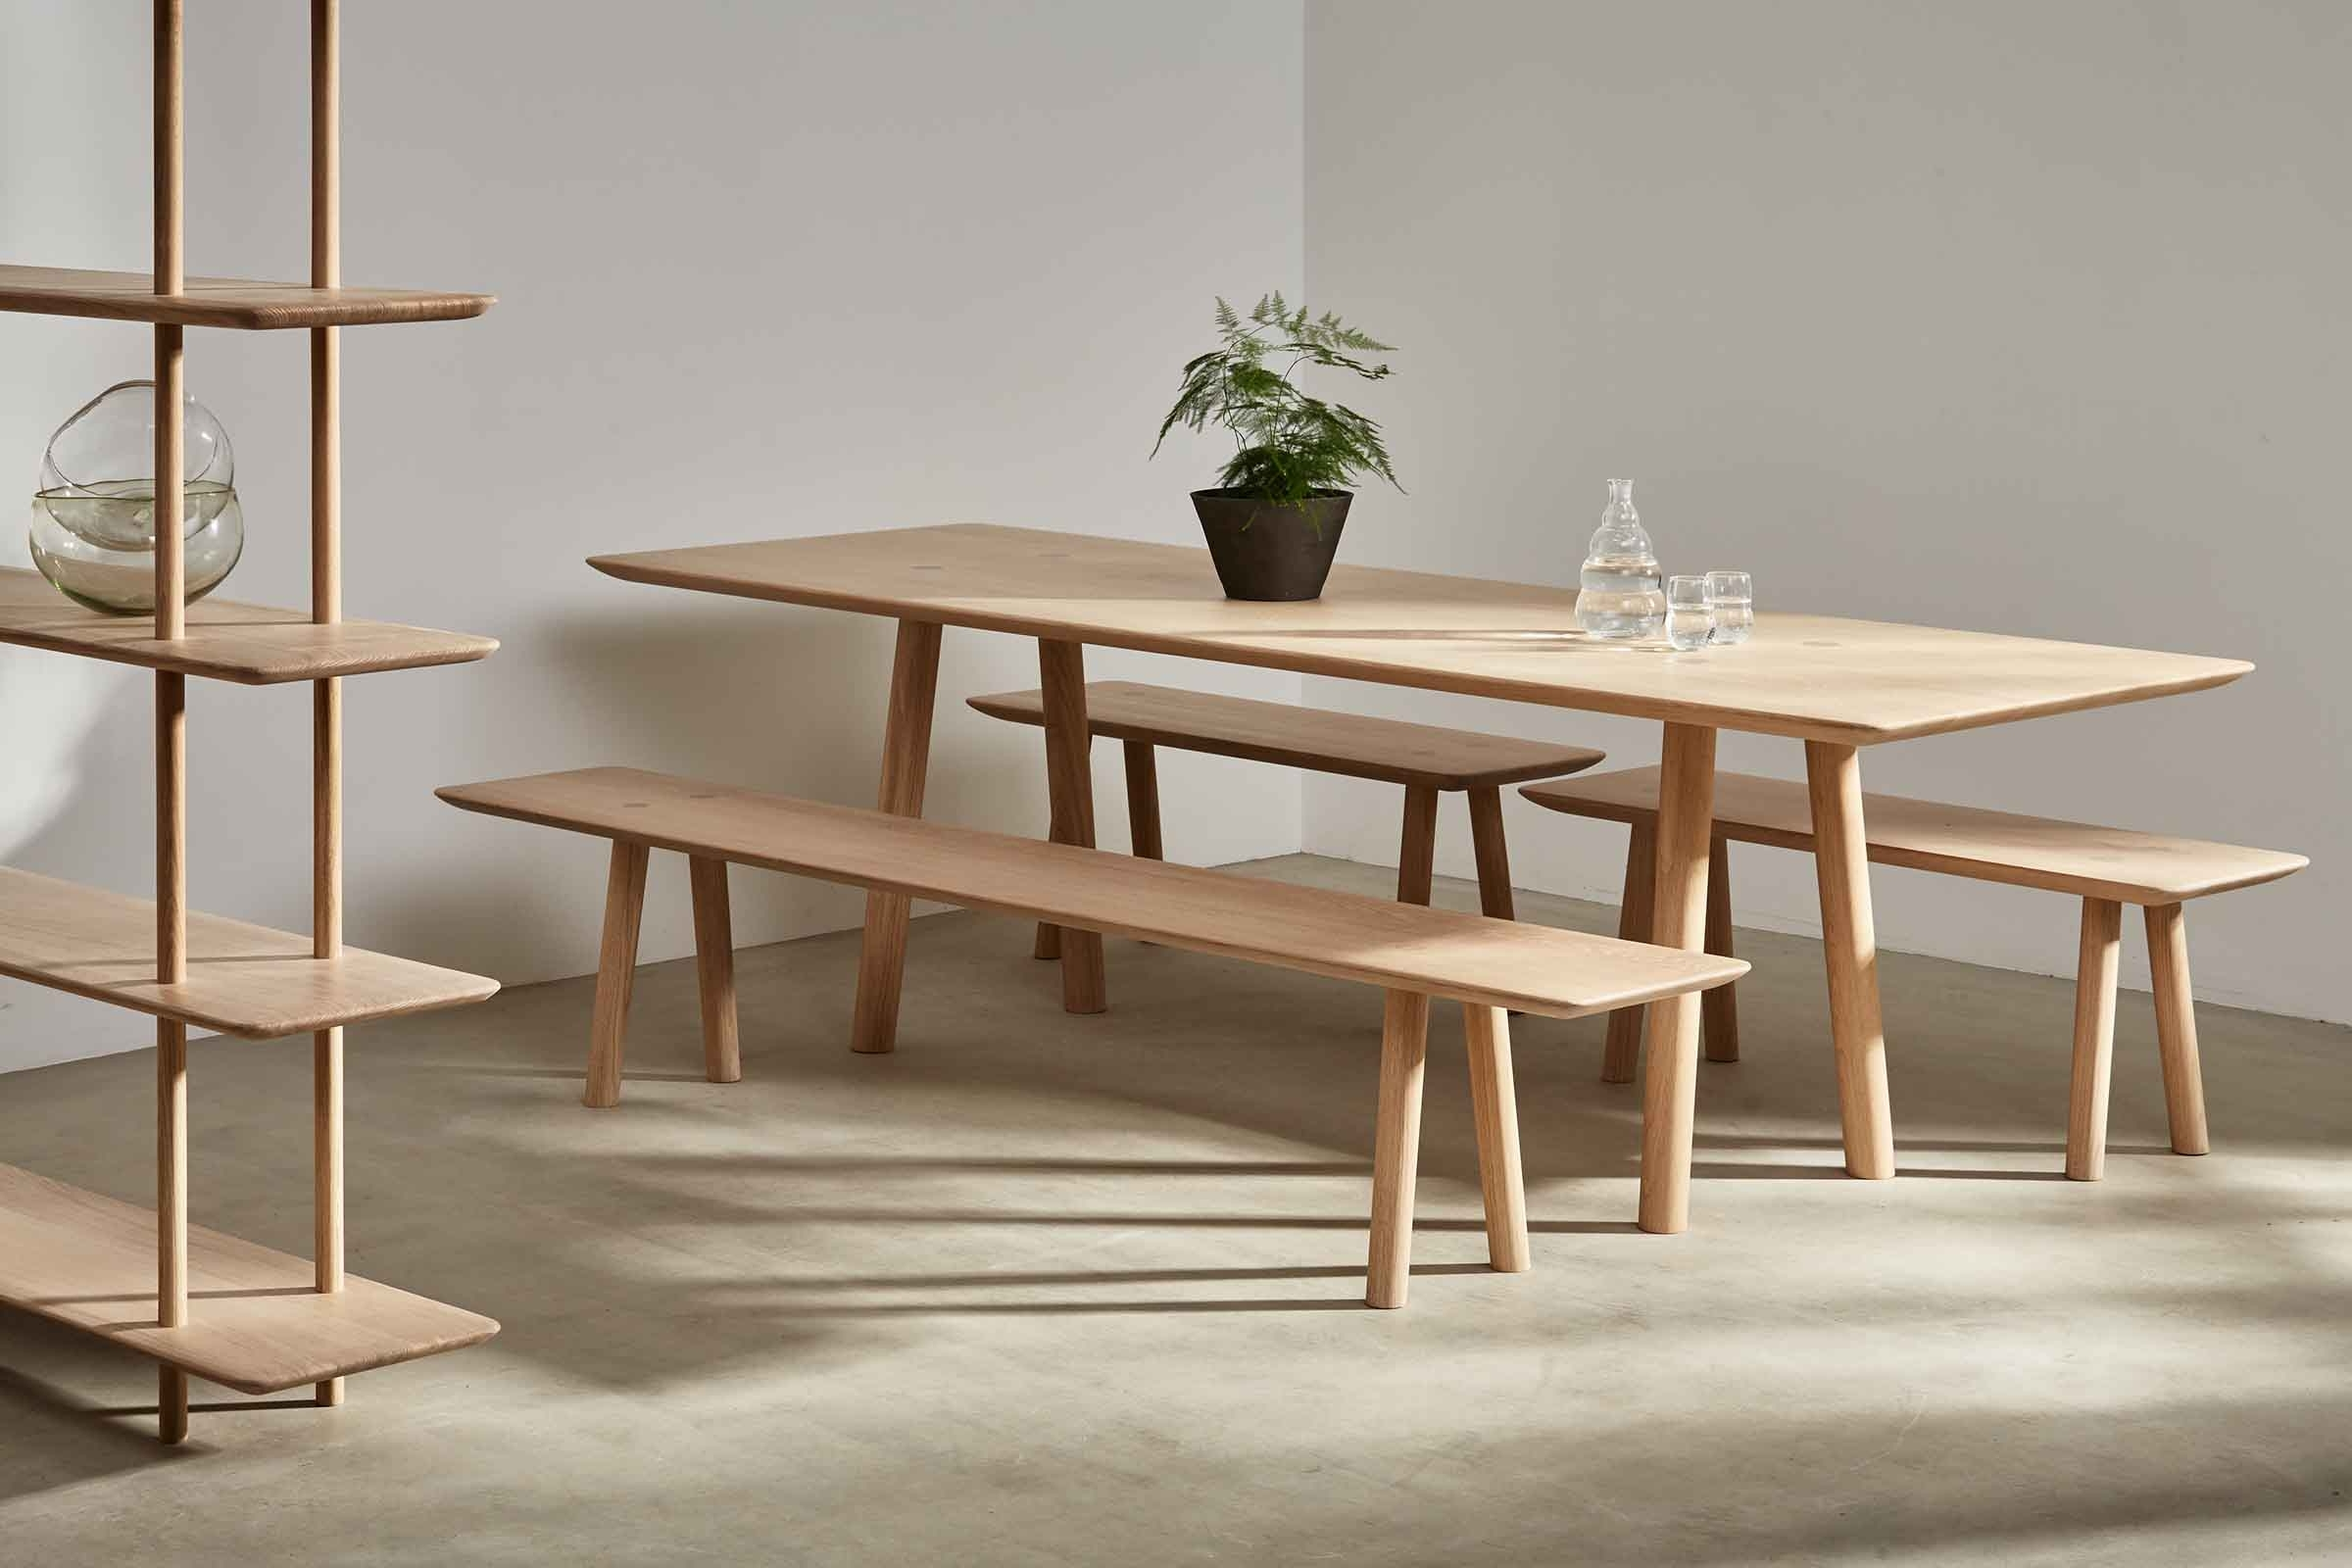 Most Recently Released Contemporary Furniture Handmade In Englandbenchmark Pertaining To Artisanal Dining Tables (View 20 of 25)